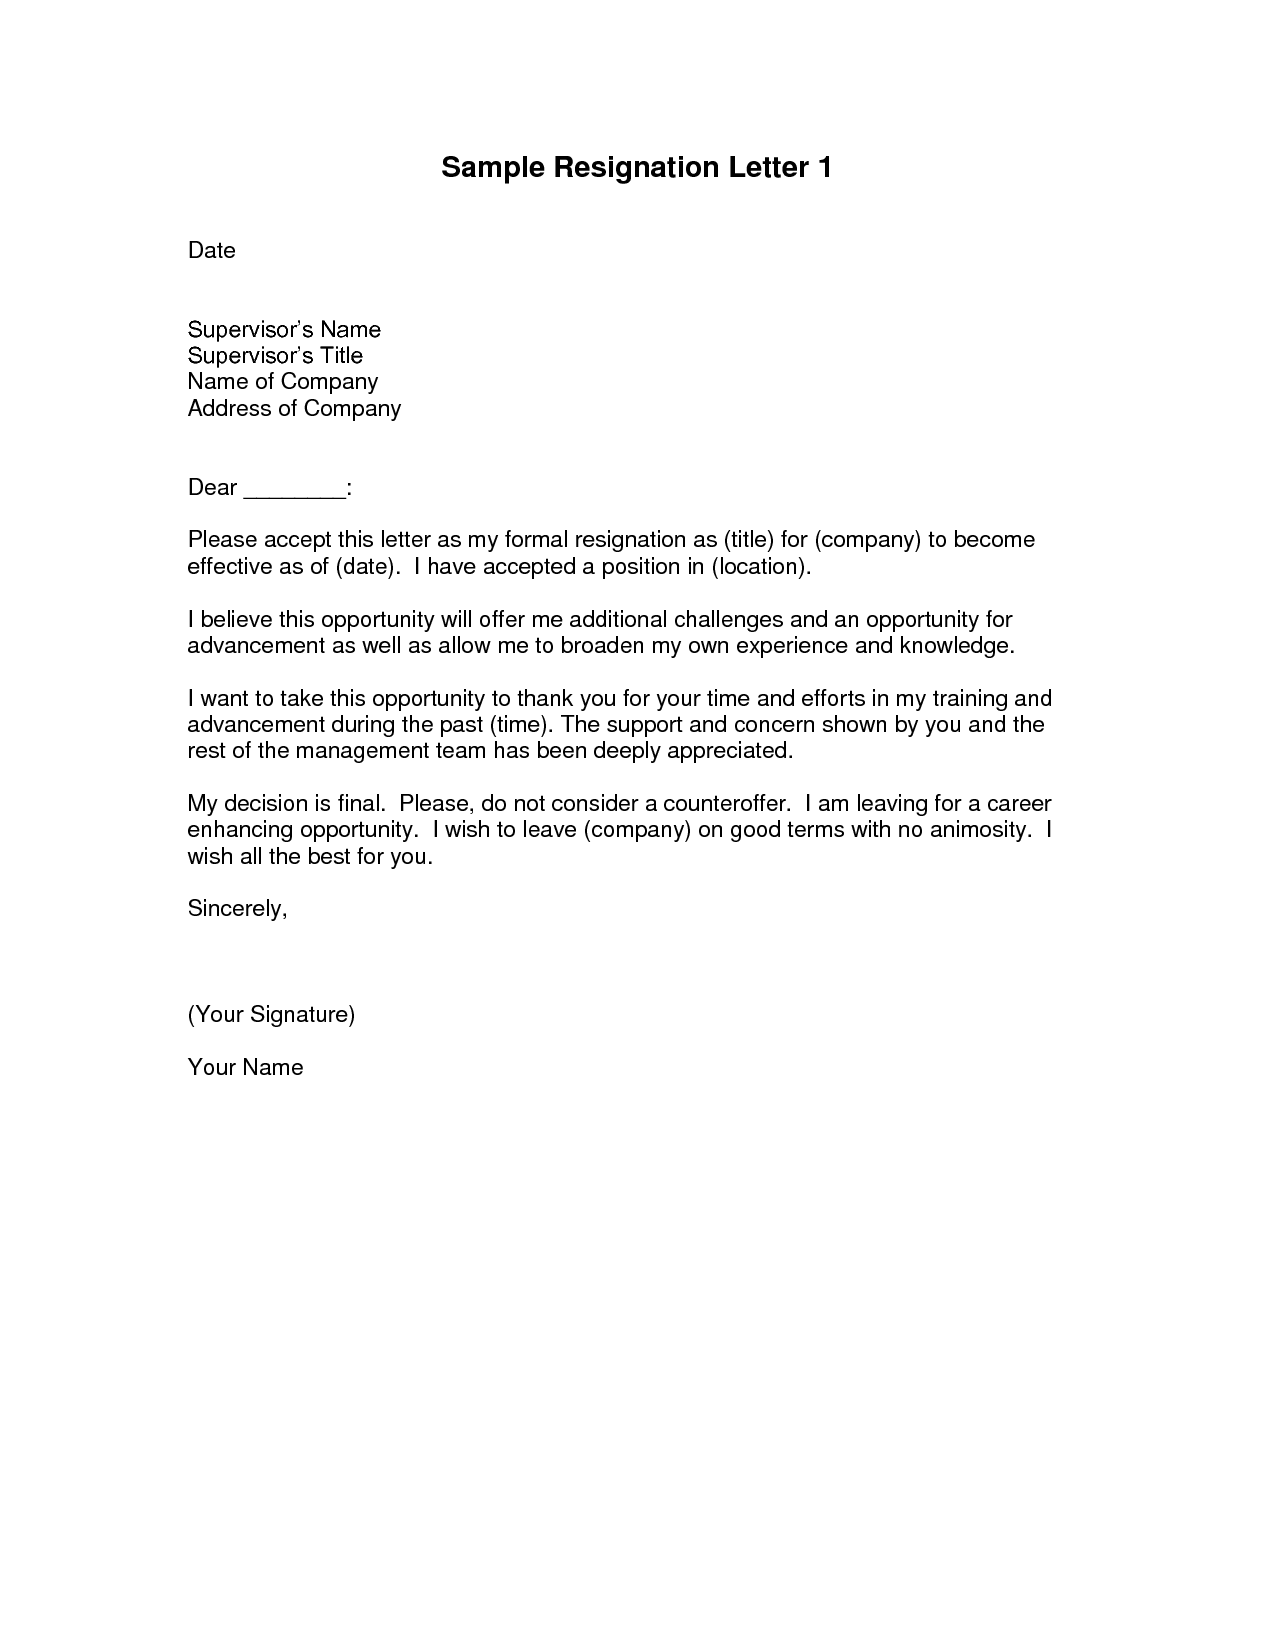 Format of resign letter from company